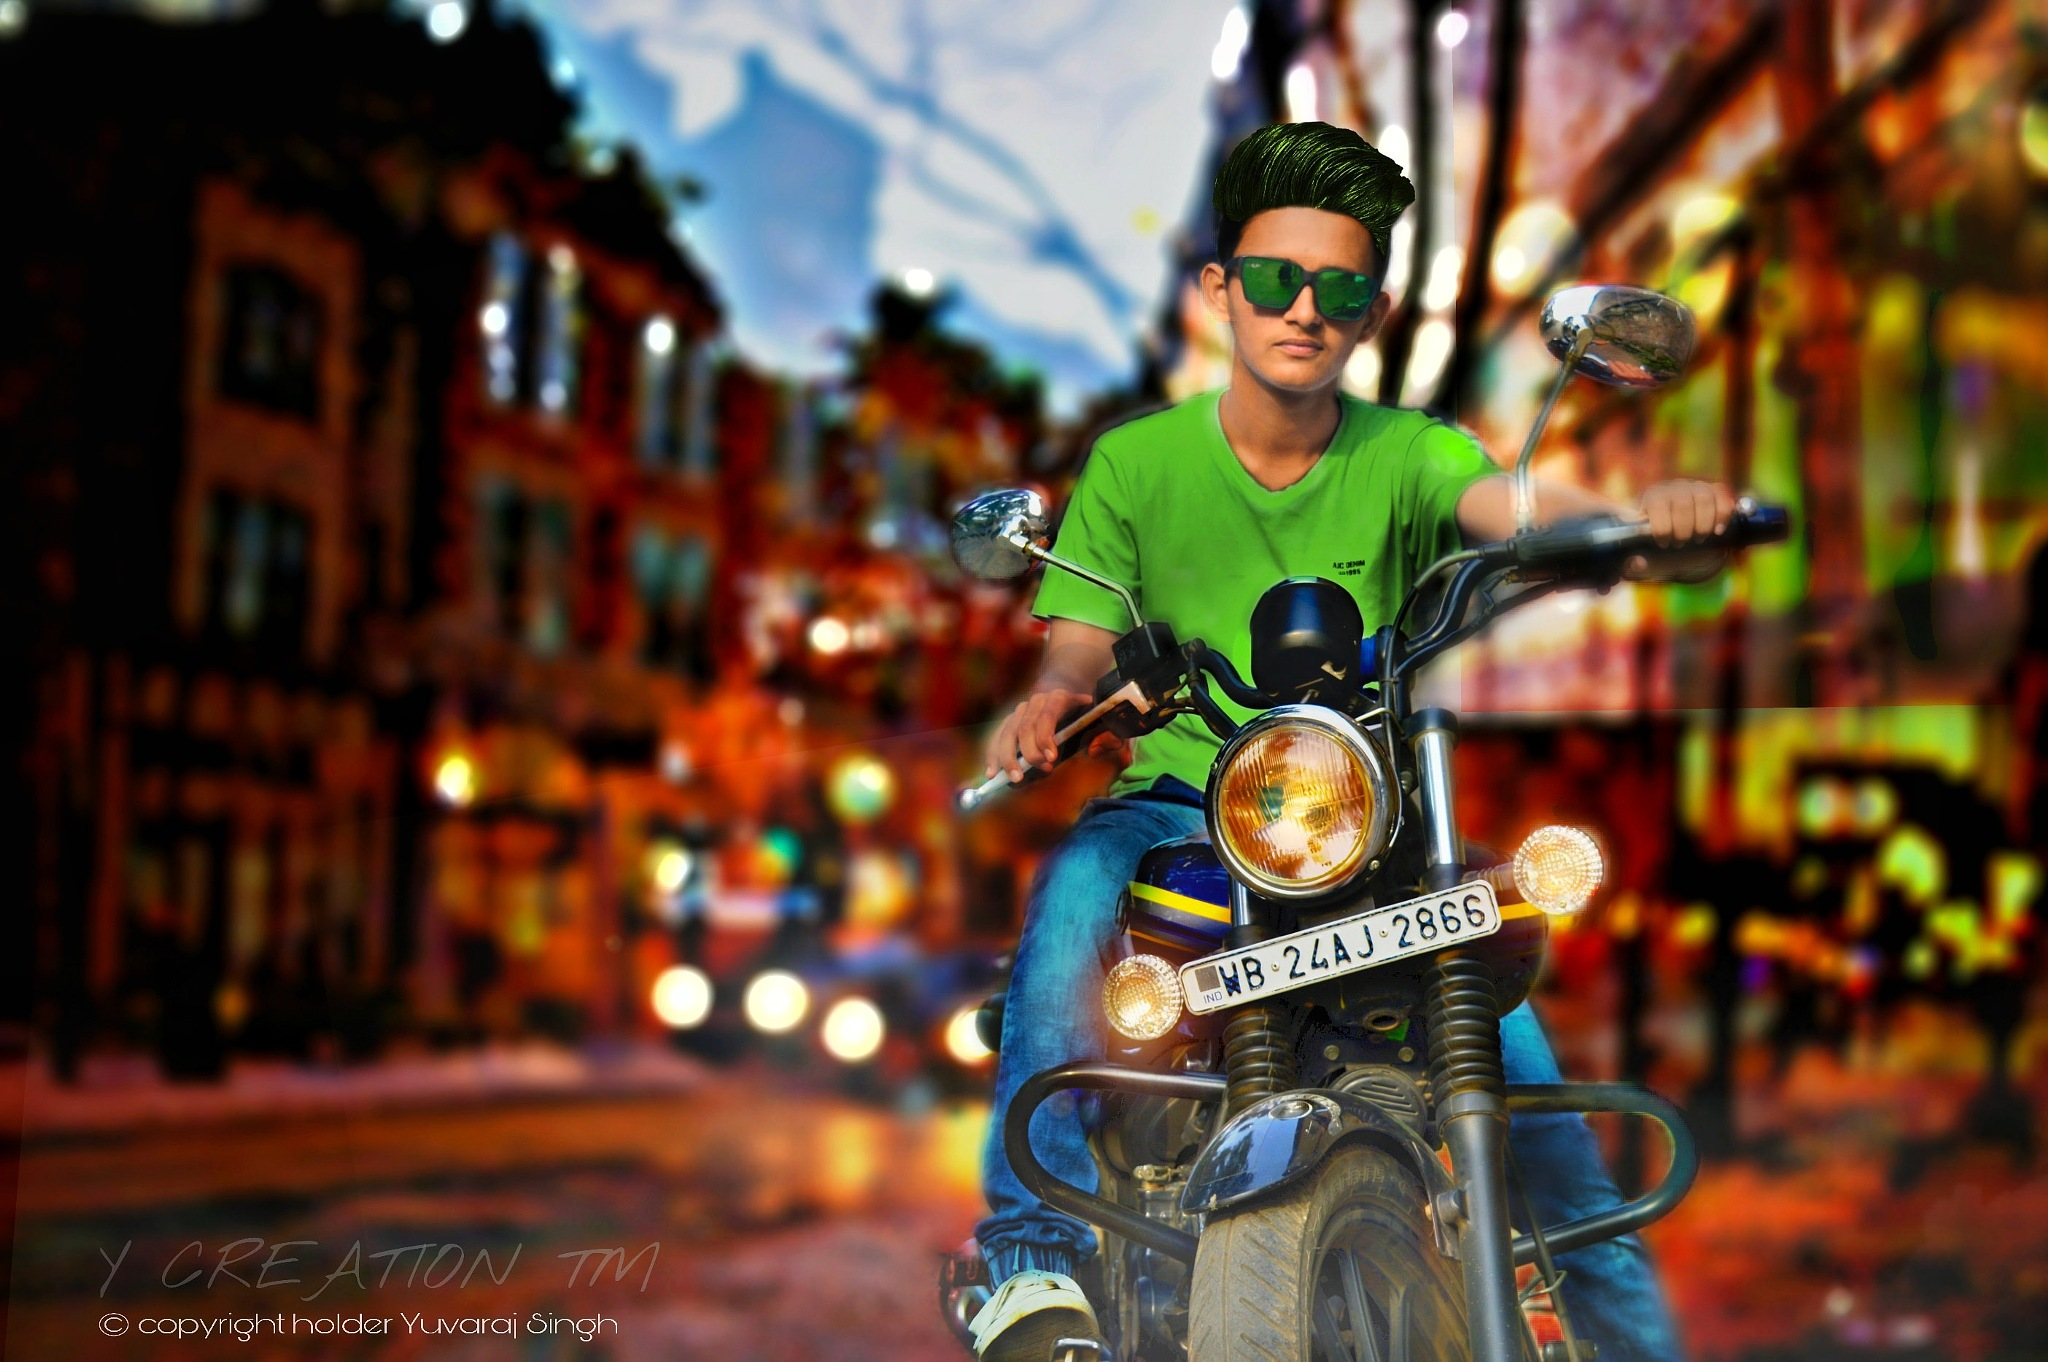 cool edit bike Y CREATION ™ by Yuvaraj Singh